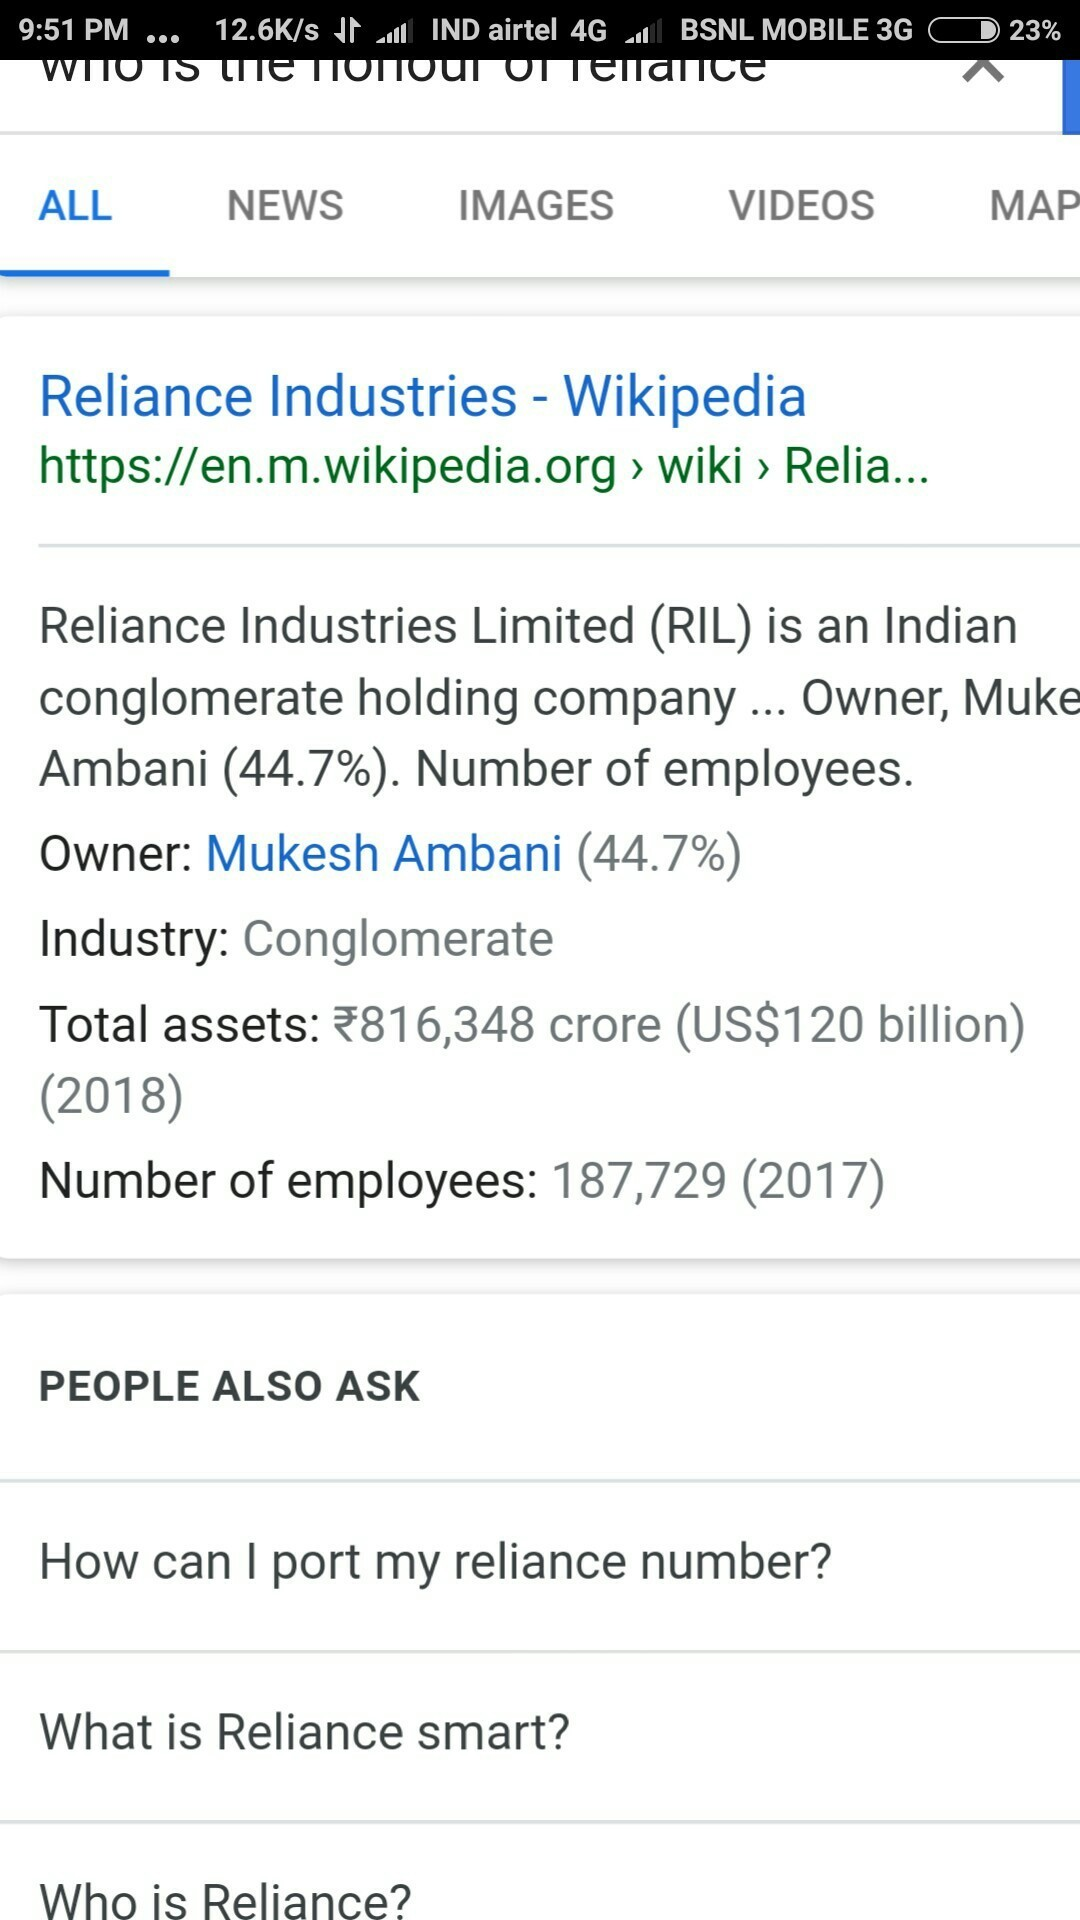 who is the honour of Reliance ? - Brainly in